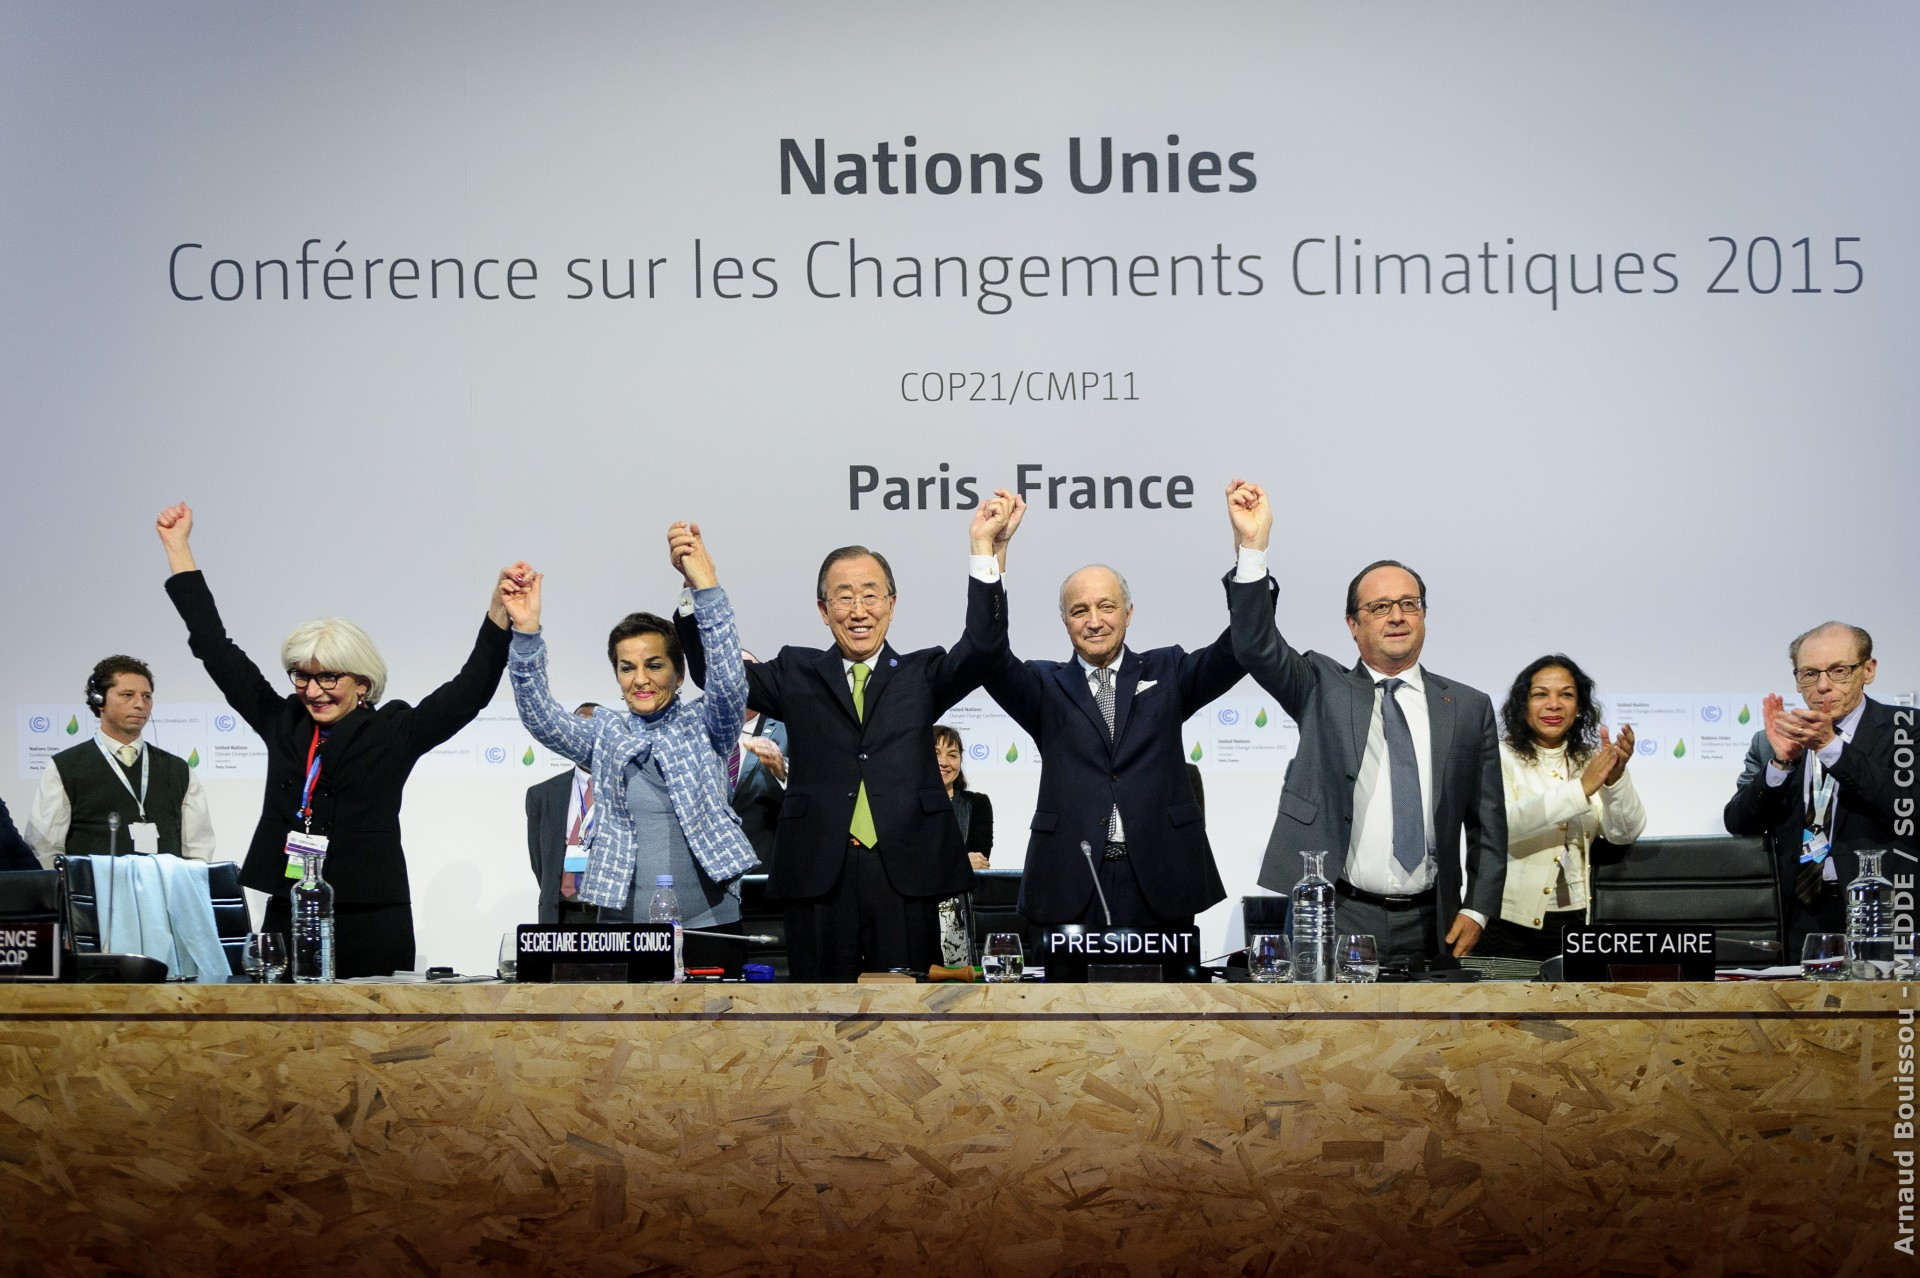 IB Environmental Systems & Societies: Climate Negotiations